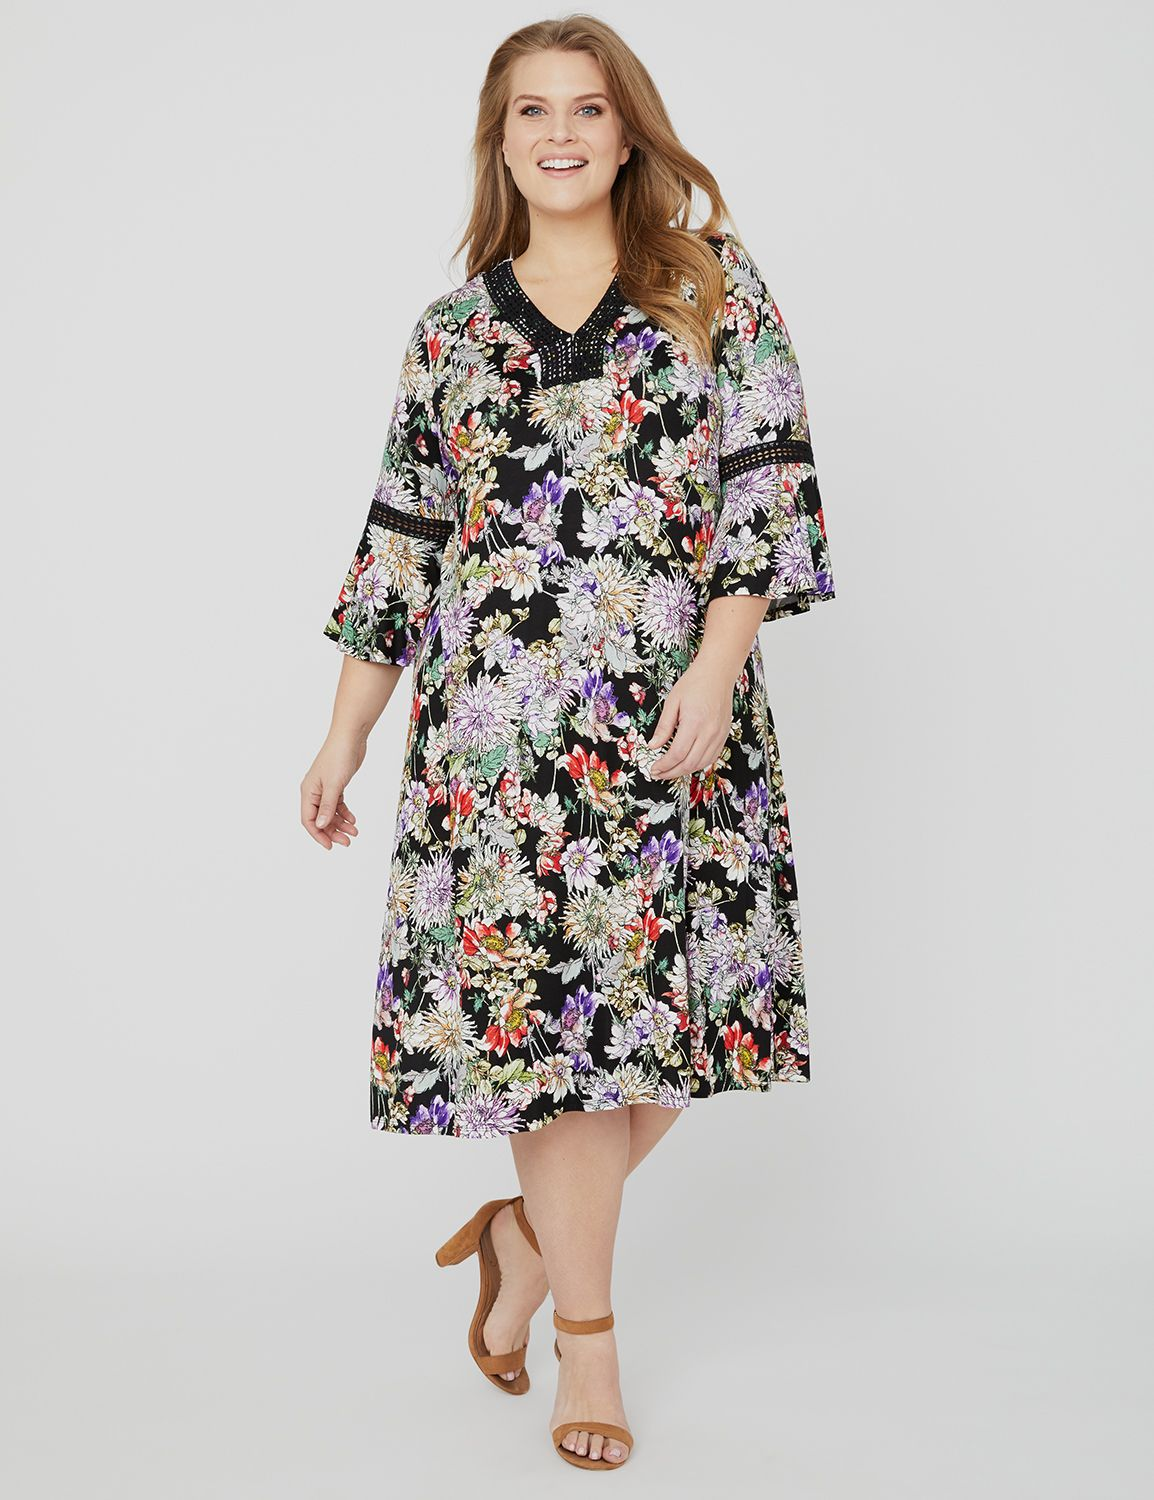 Floral Meadow Dress 1092650 Spense Floral Print Dress w MP-300102322